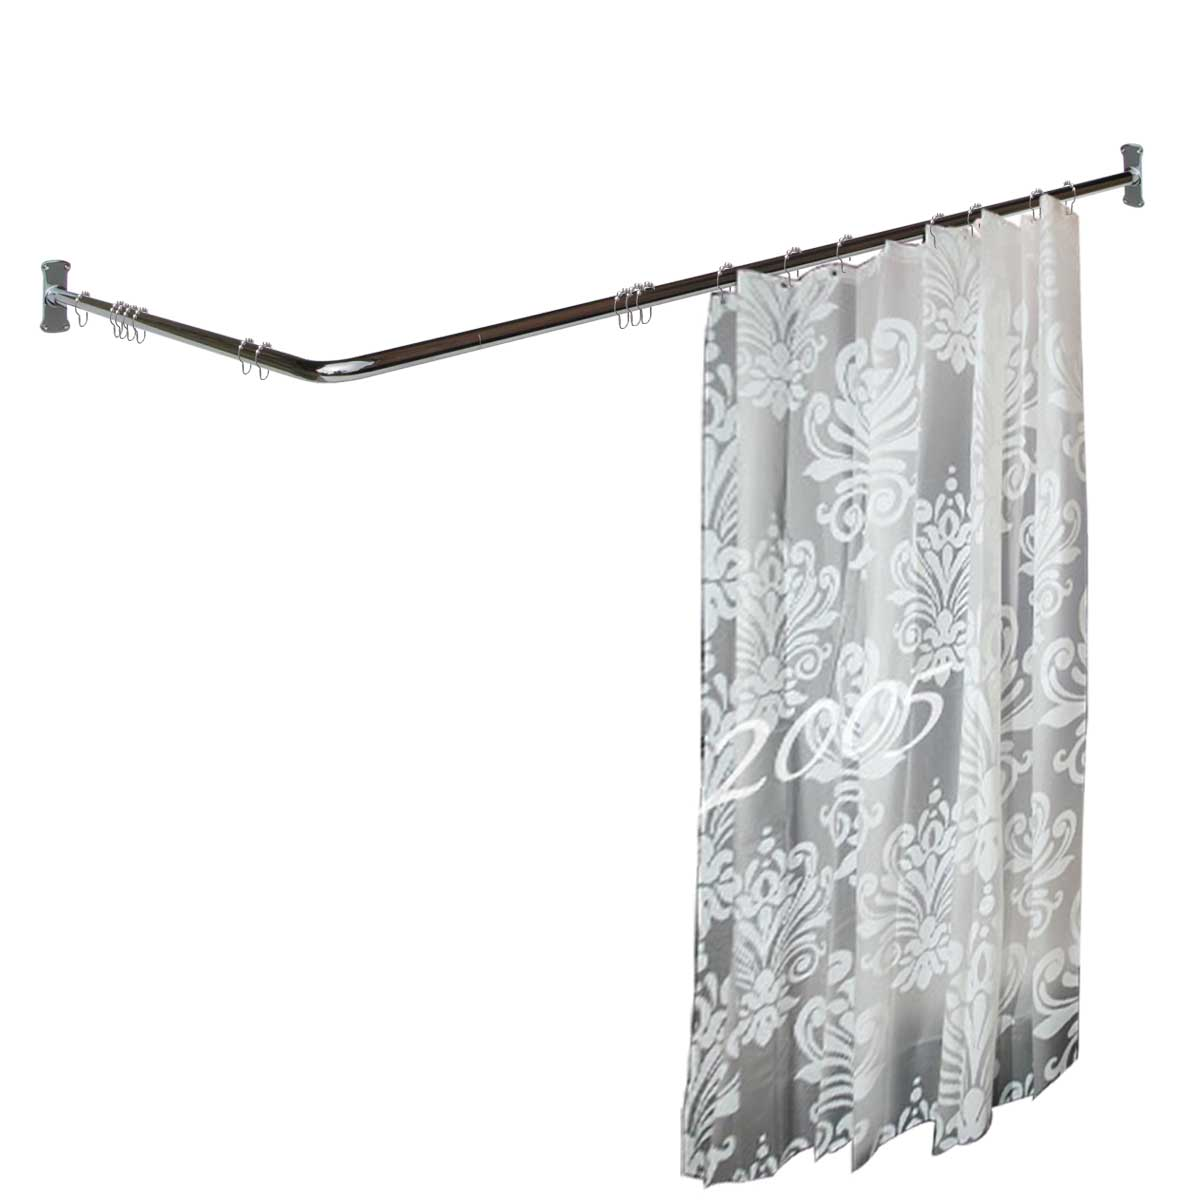 PRETwo Sided Shower Curtain Rod Chrome Plated Brass 7 8inch Dia